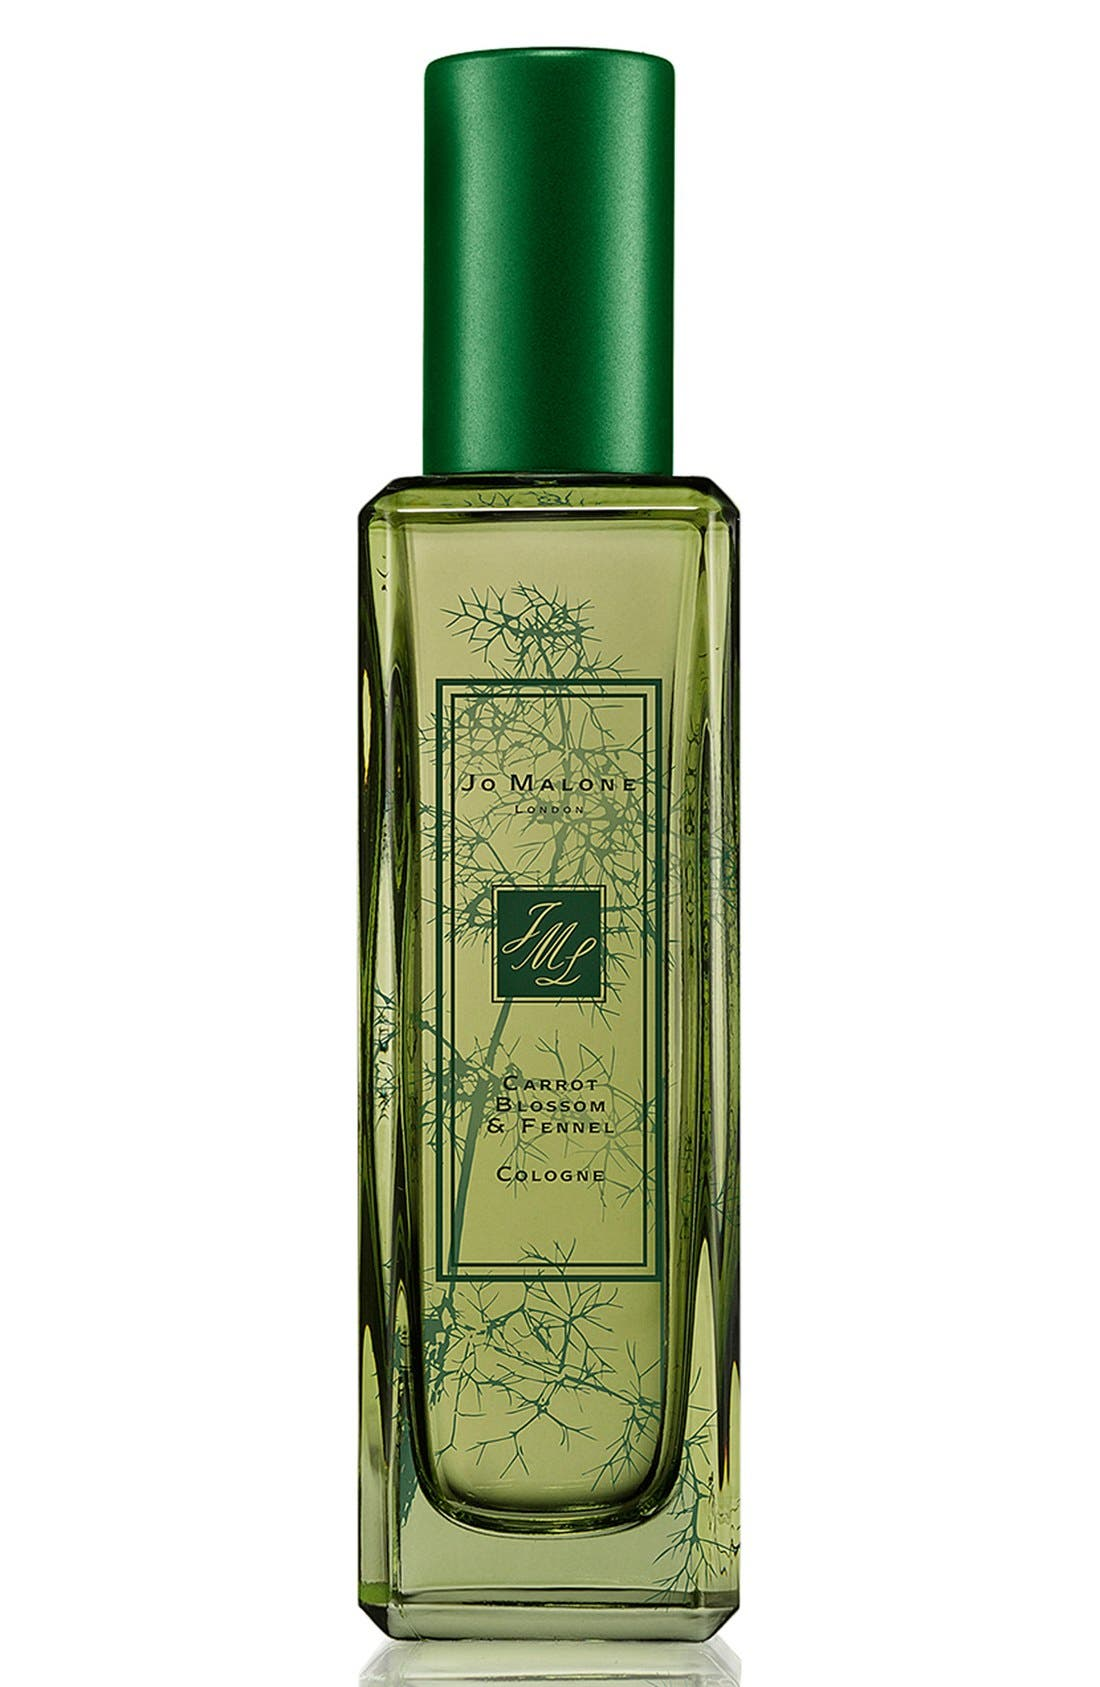 Jo Malone London™ 'Carrot Blossom & Fennel' Cologne